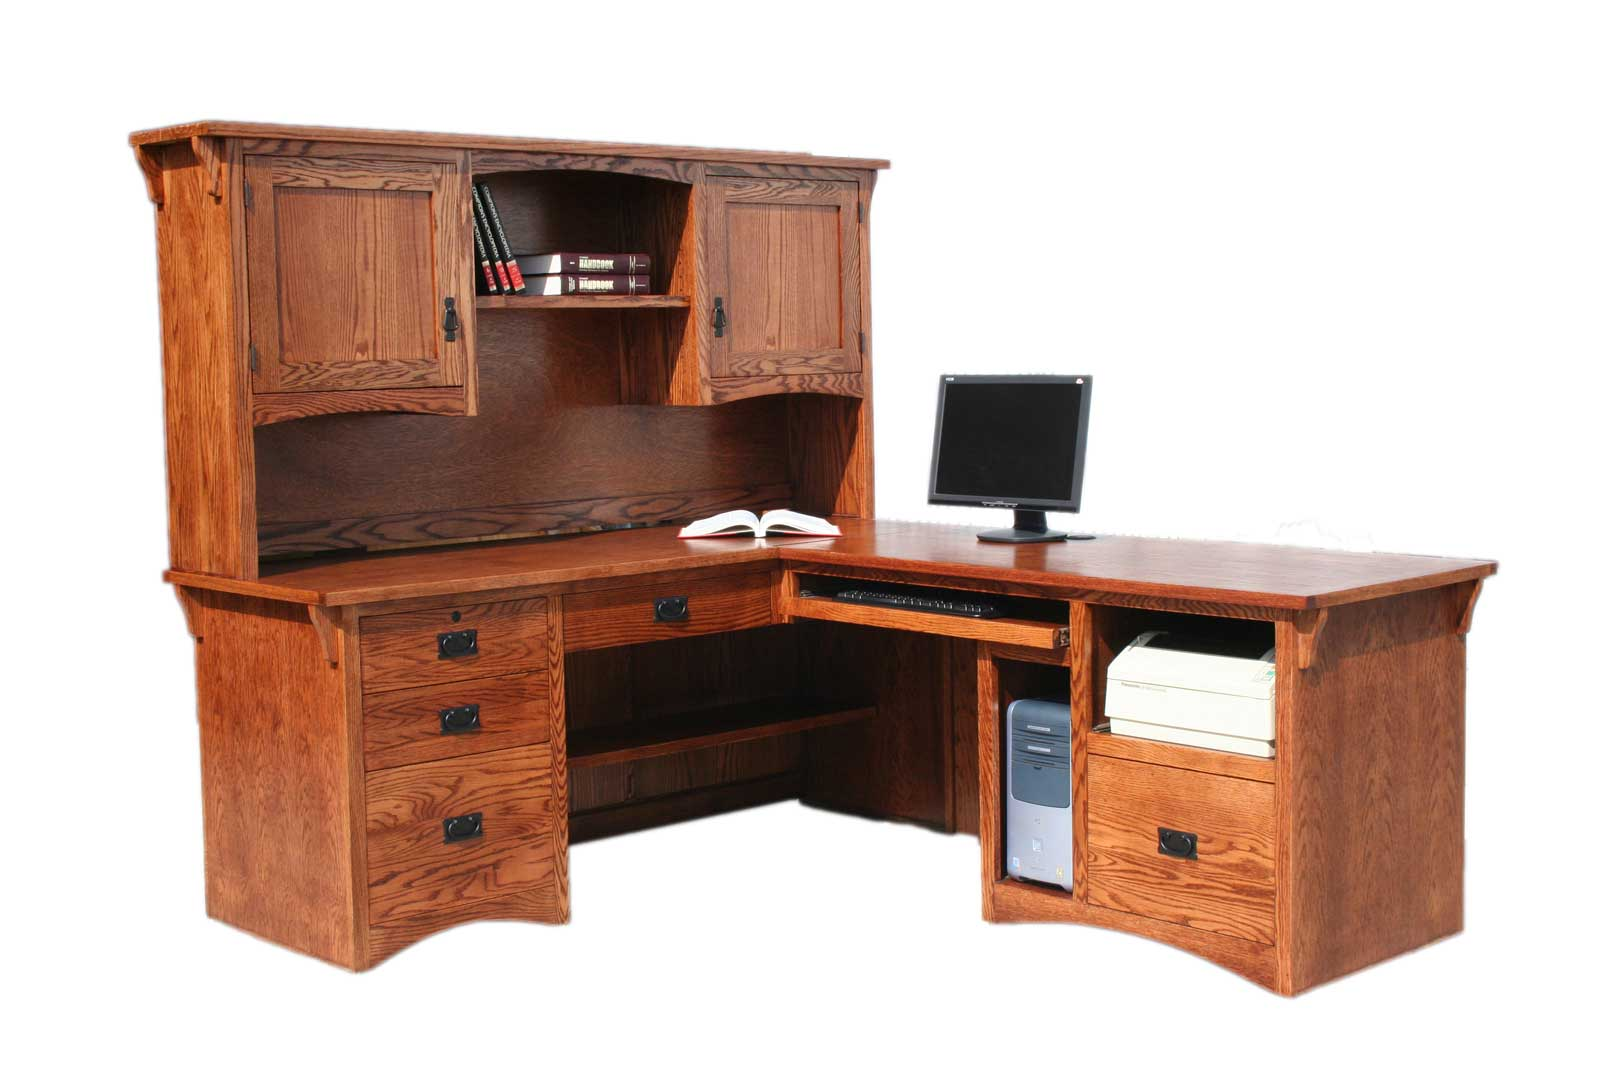 Solid Oak Computer Workstation for Home Office